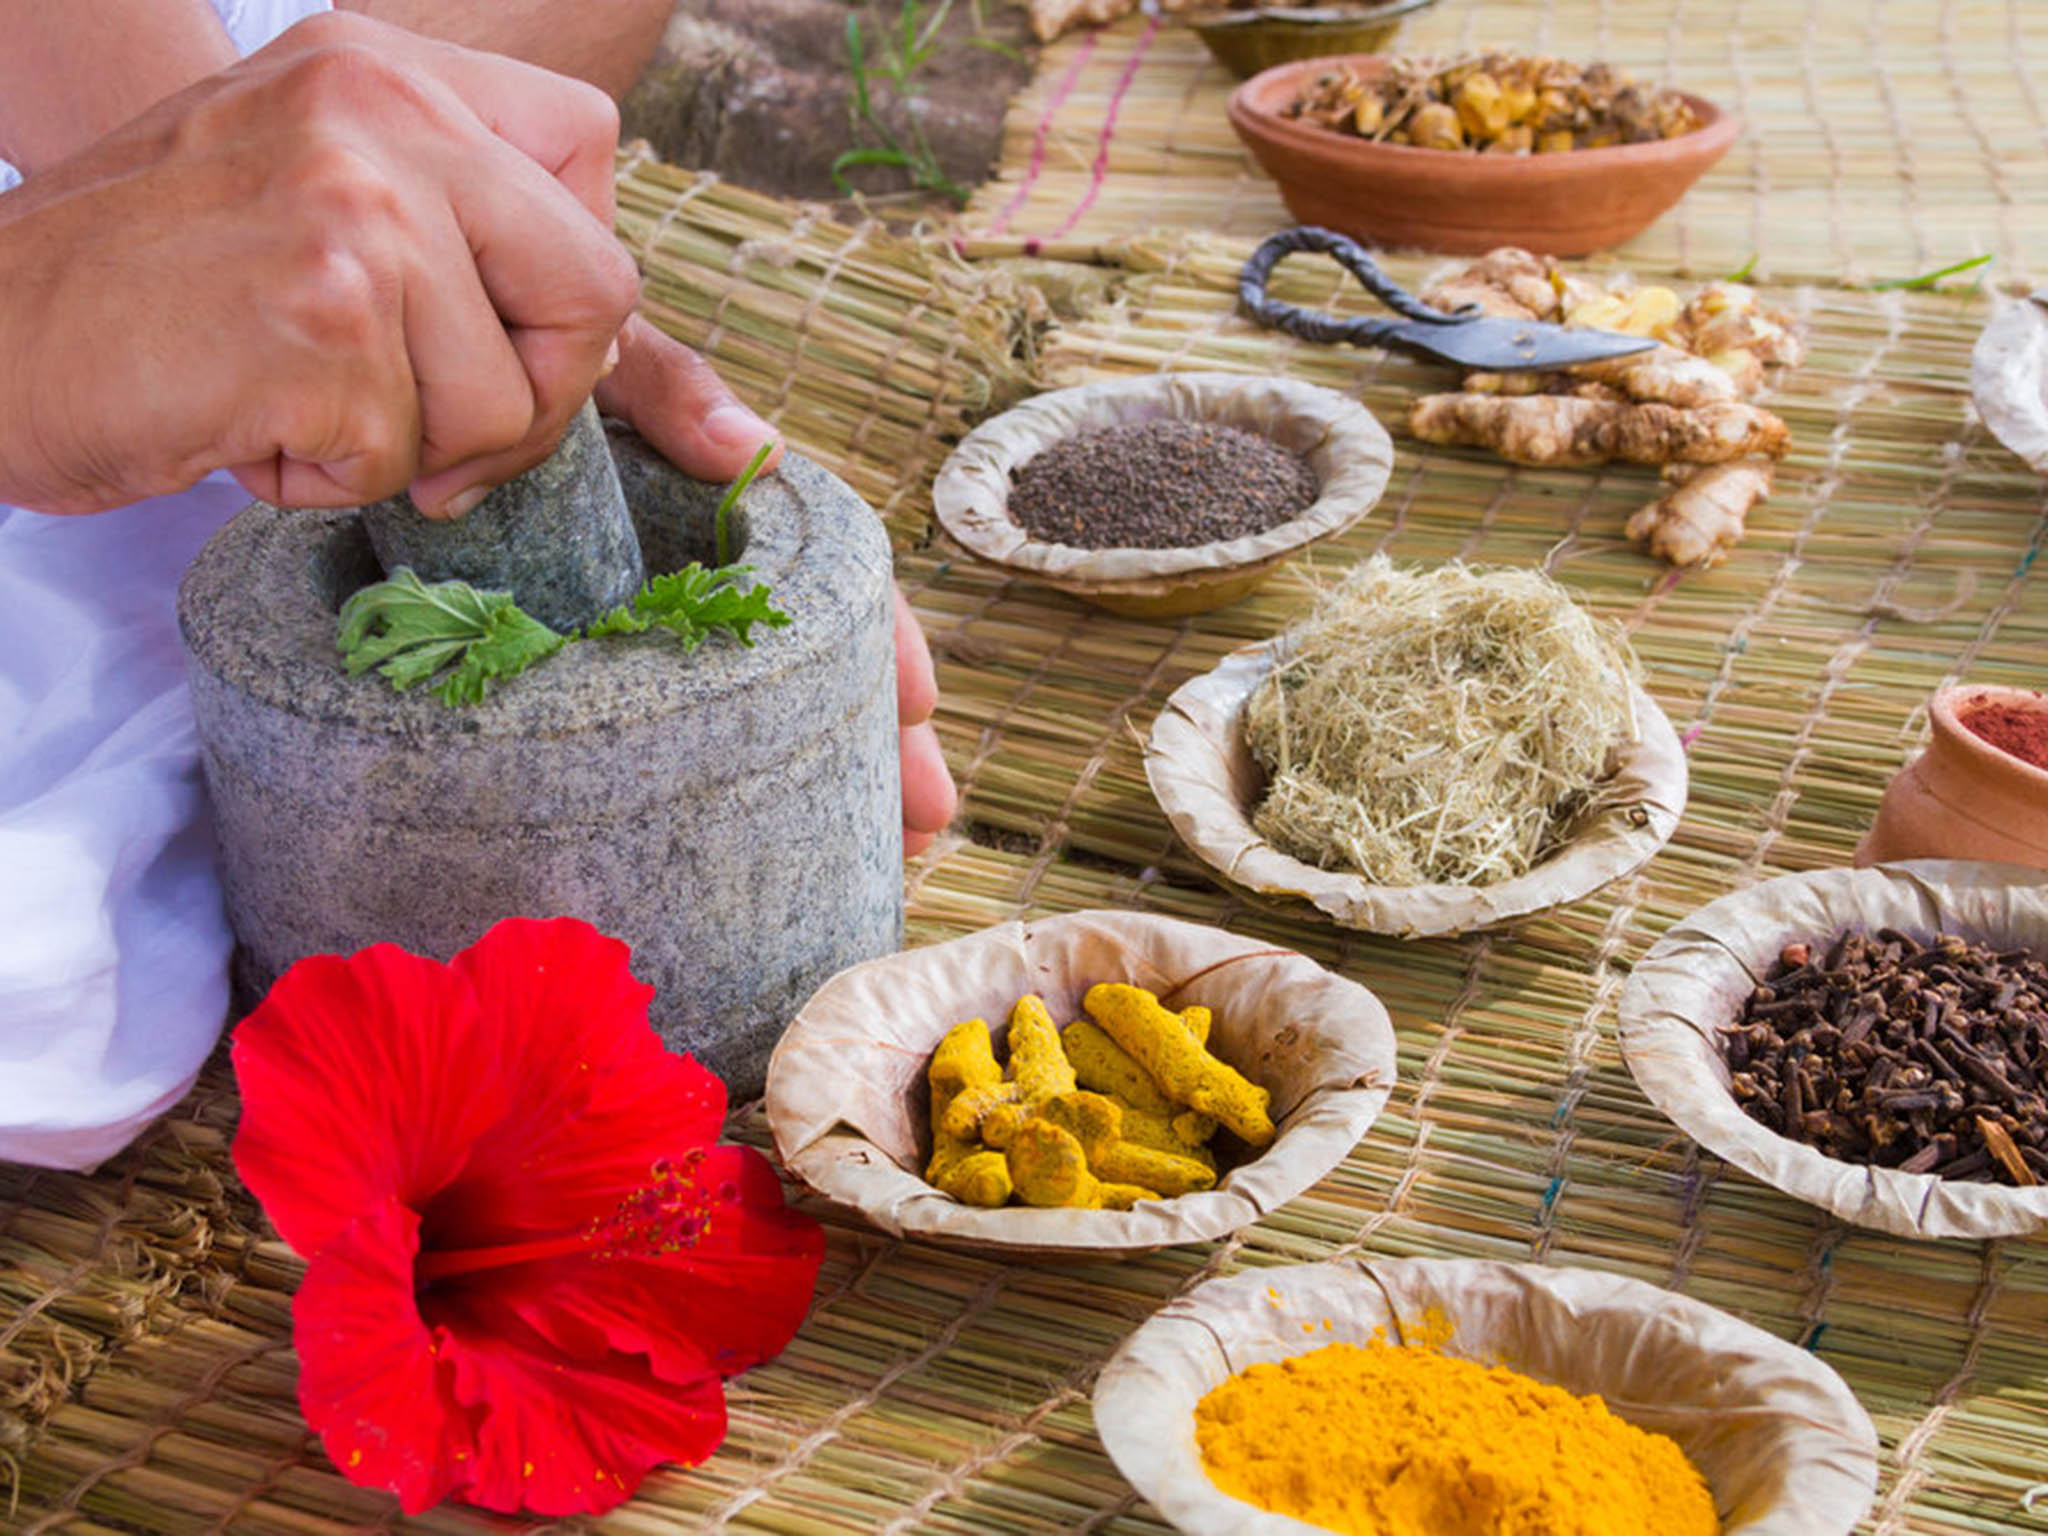 How Traditional Health Claims About Indias Ayurvedic Foods